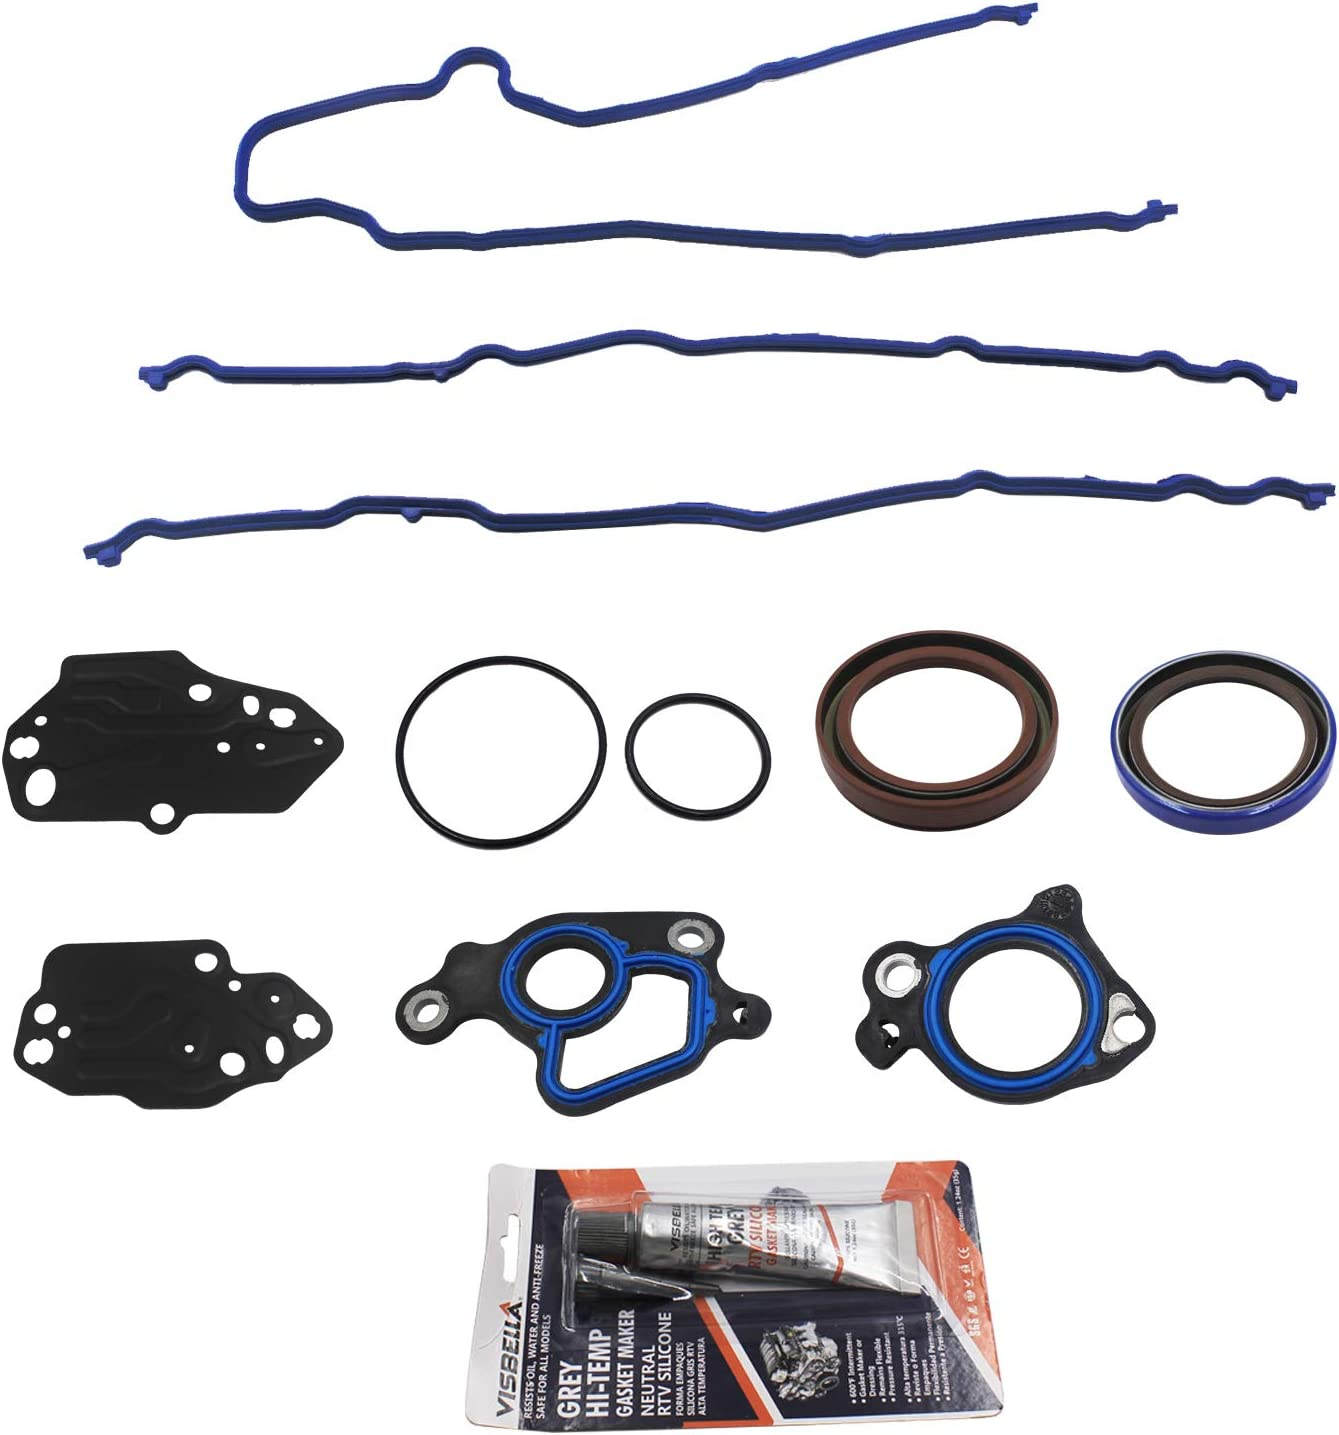 Timing Cover Gasket Set Replacement for Ford F-150 F150 F-250 F250 ...